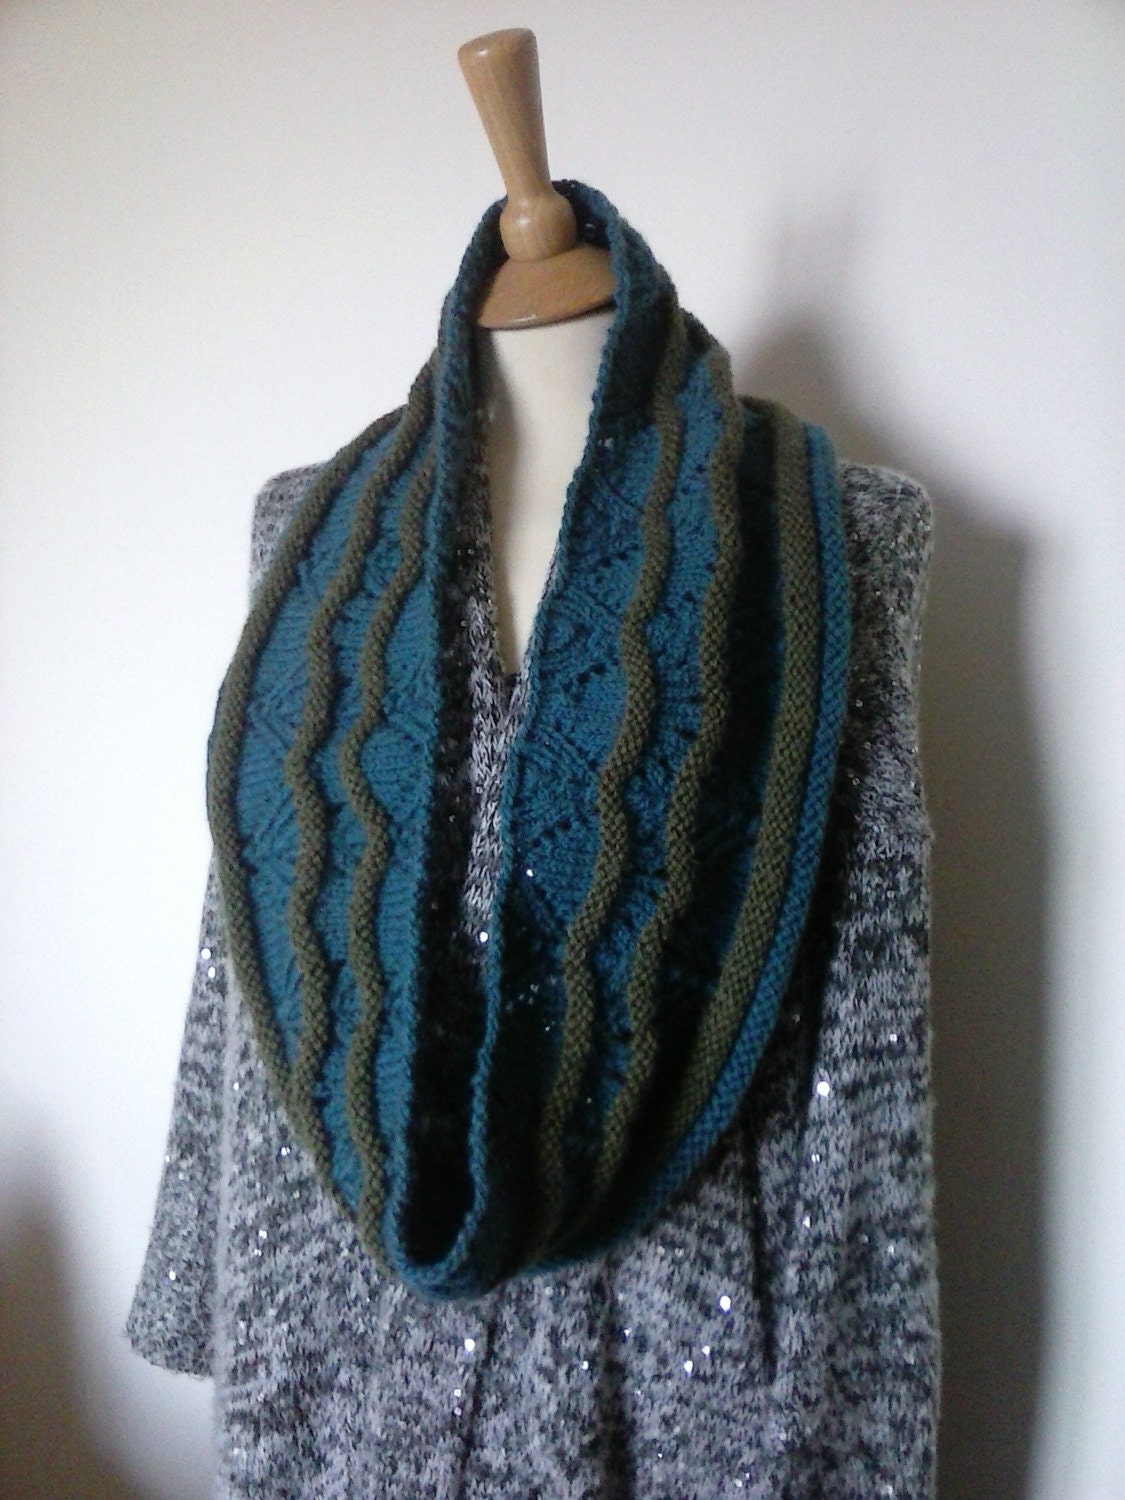 Knitting Pattern For Unisex Cowl Lace And Textured Bands For Warmth And Style From